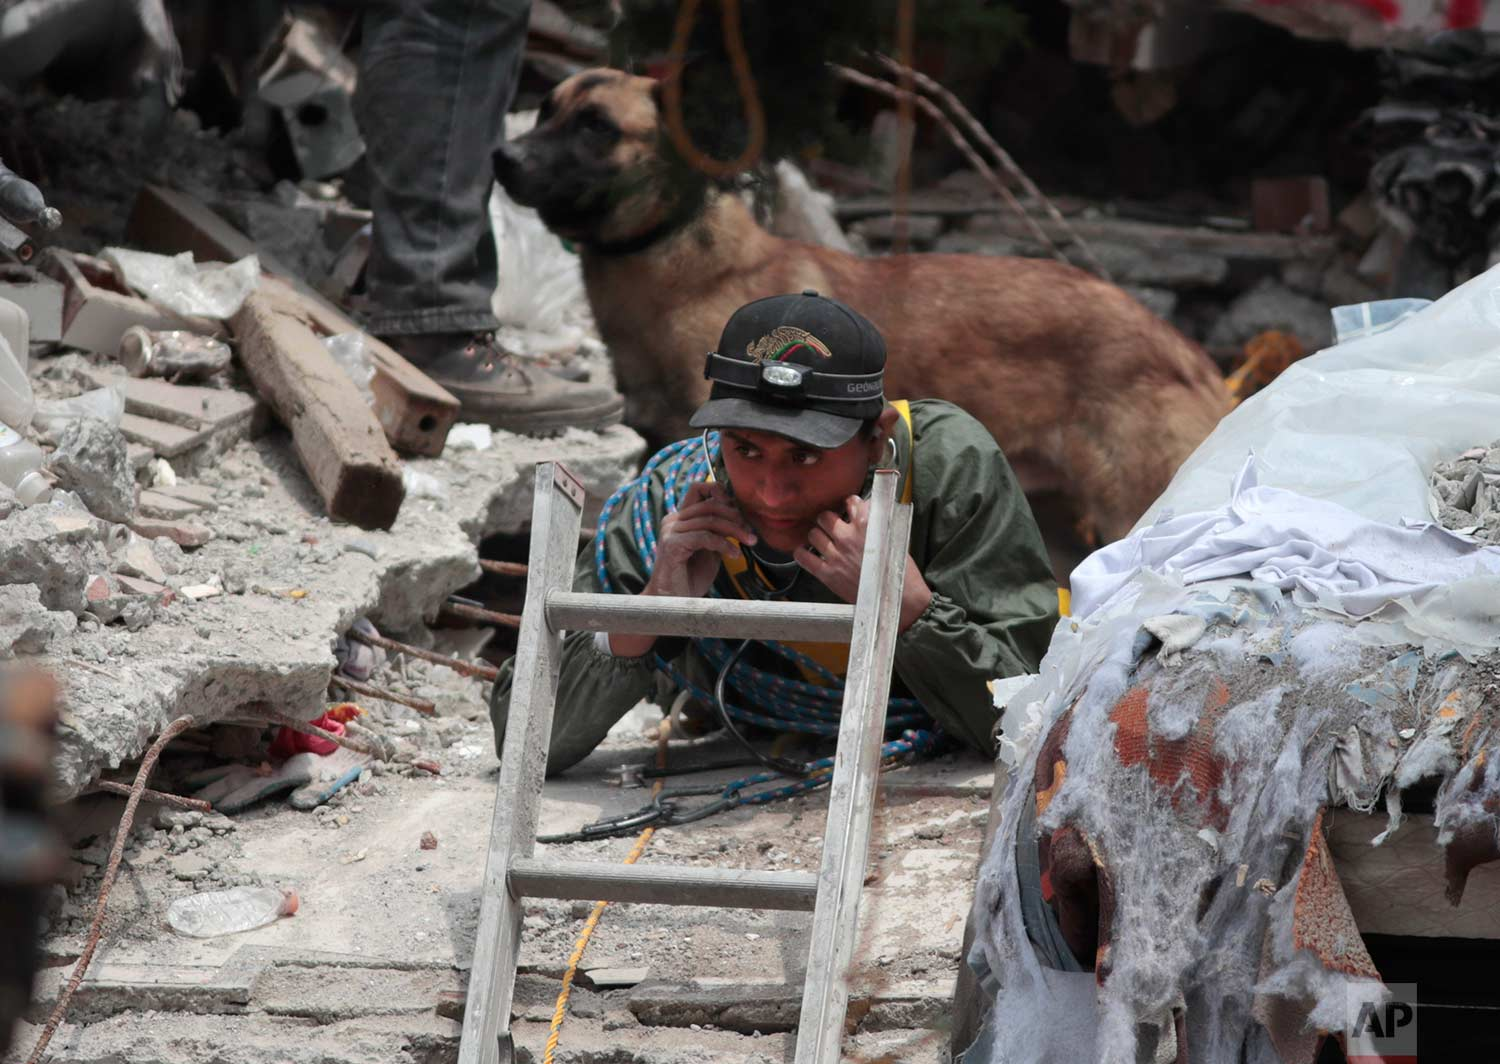 A rescue worker listens for signs of a person trapped under the rubble of a building felled by a 7.1 magnitude earthquake, in the Ciudad Jardin neighborhood of Mexico City, Thursday, Sept. 21, 2017. (AP Photo/Eduardo Verdugo)